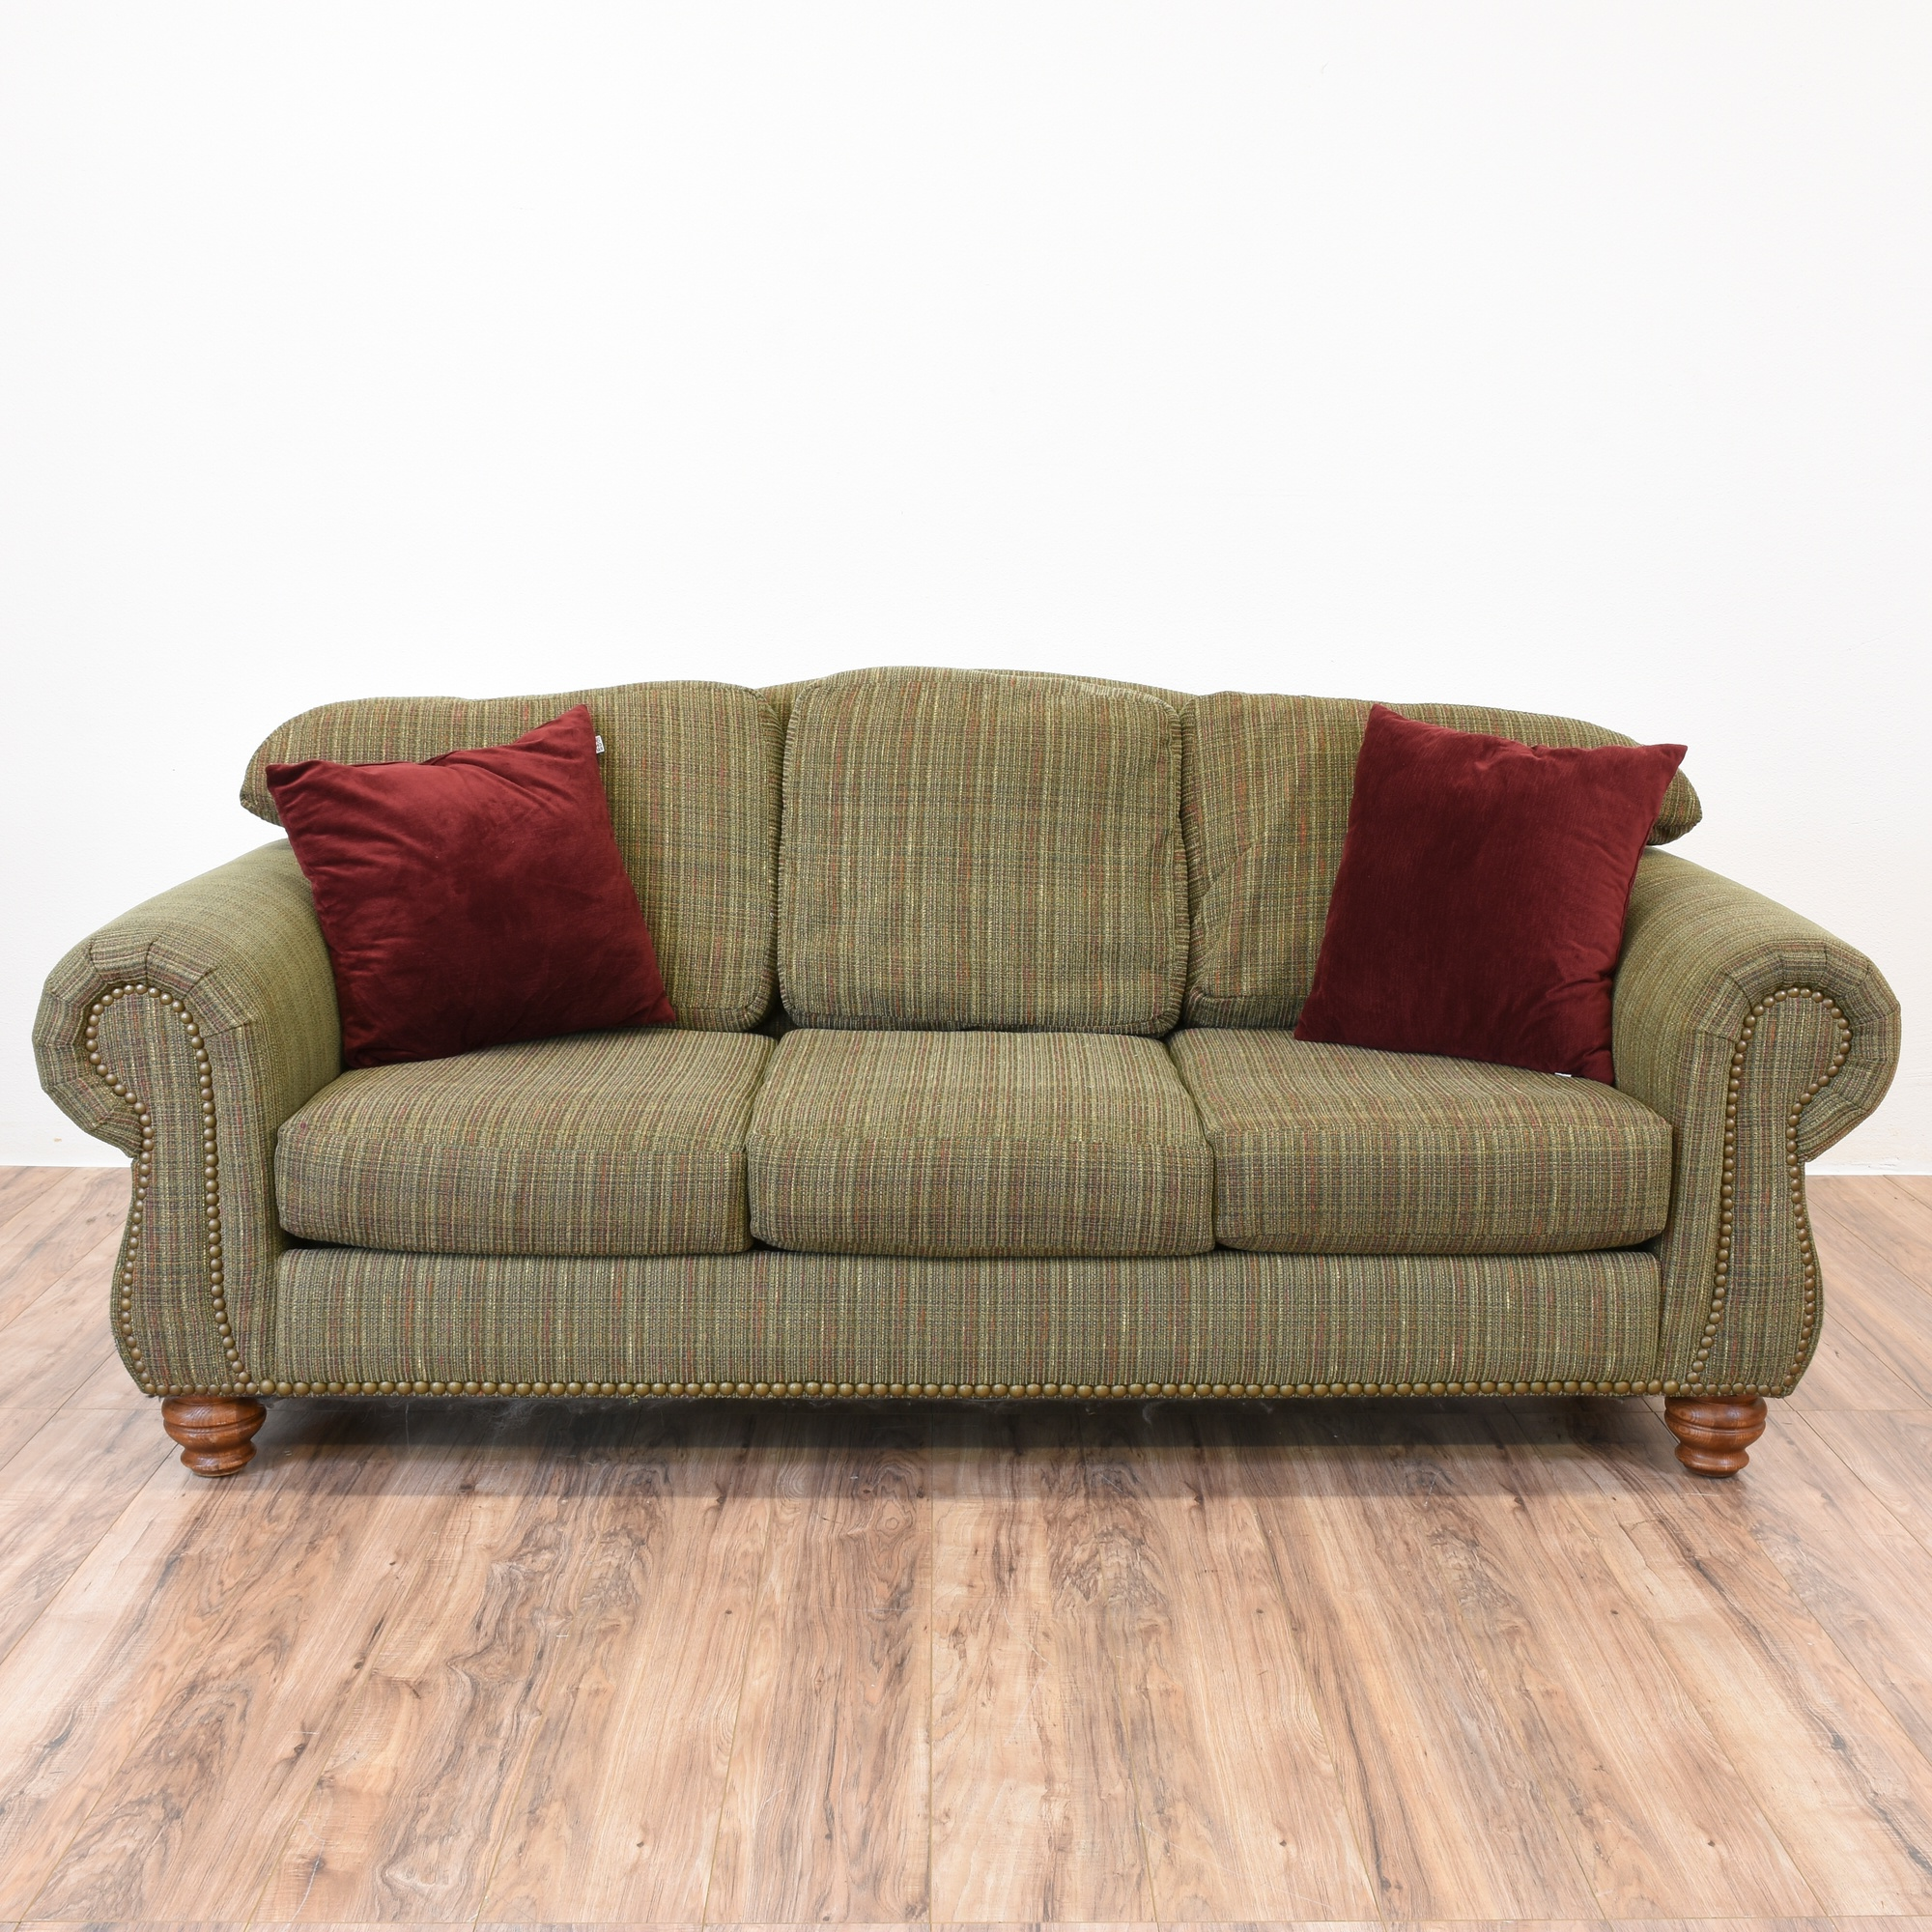 Moss Green Striped Sofa Loveseat Vintage Furniture San Diego Los Angeles